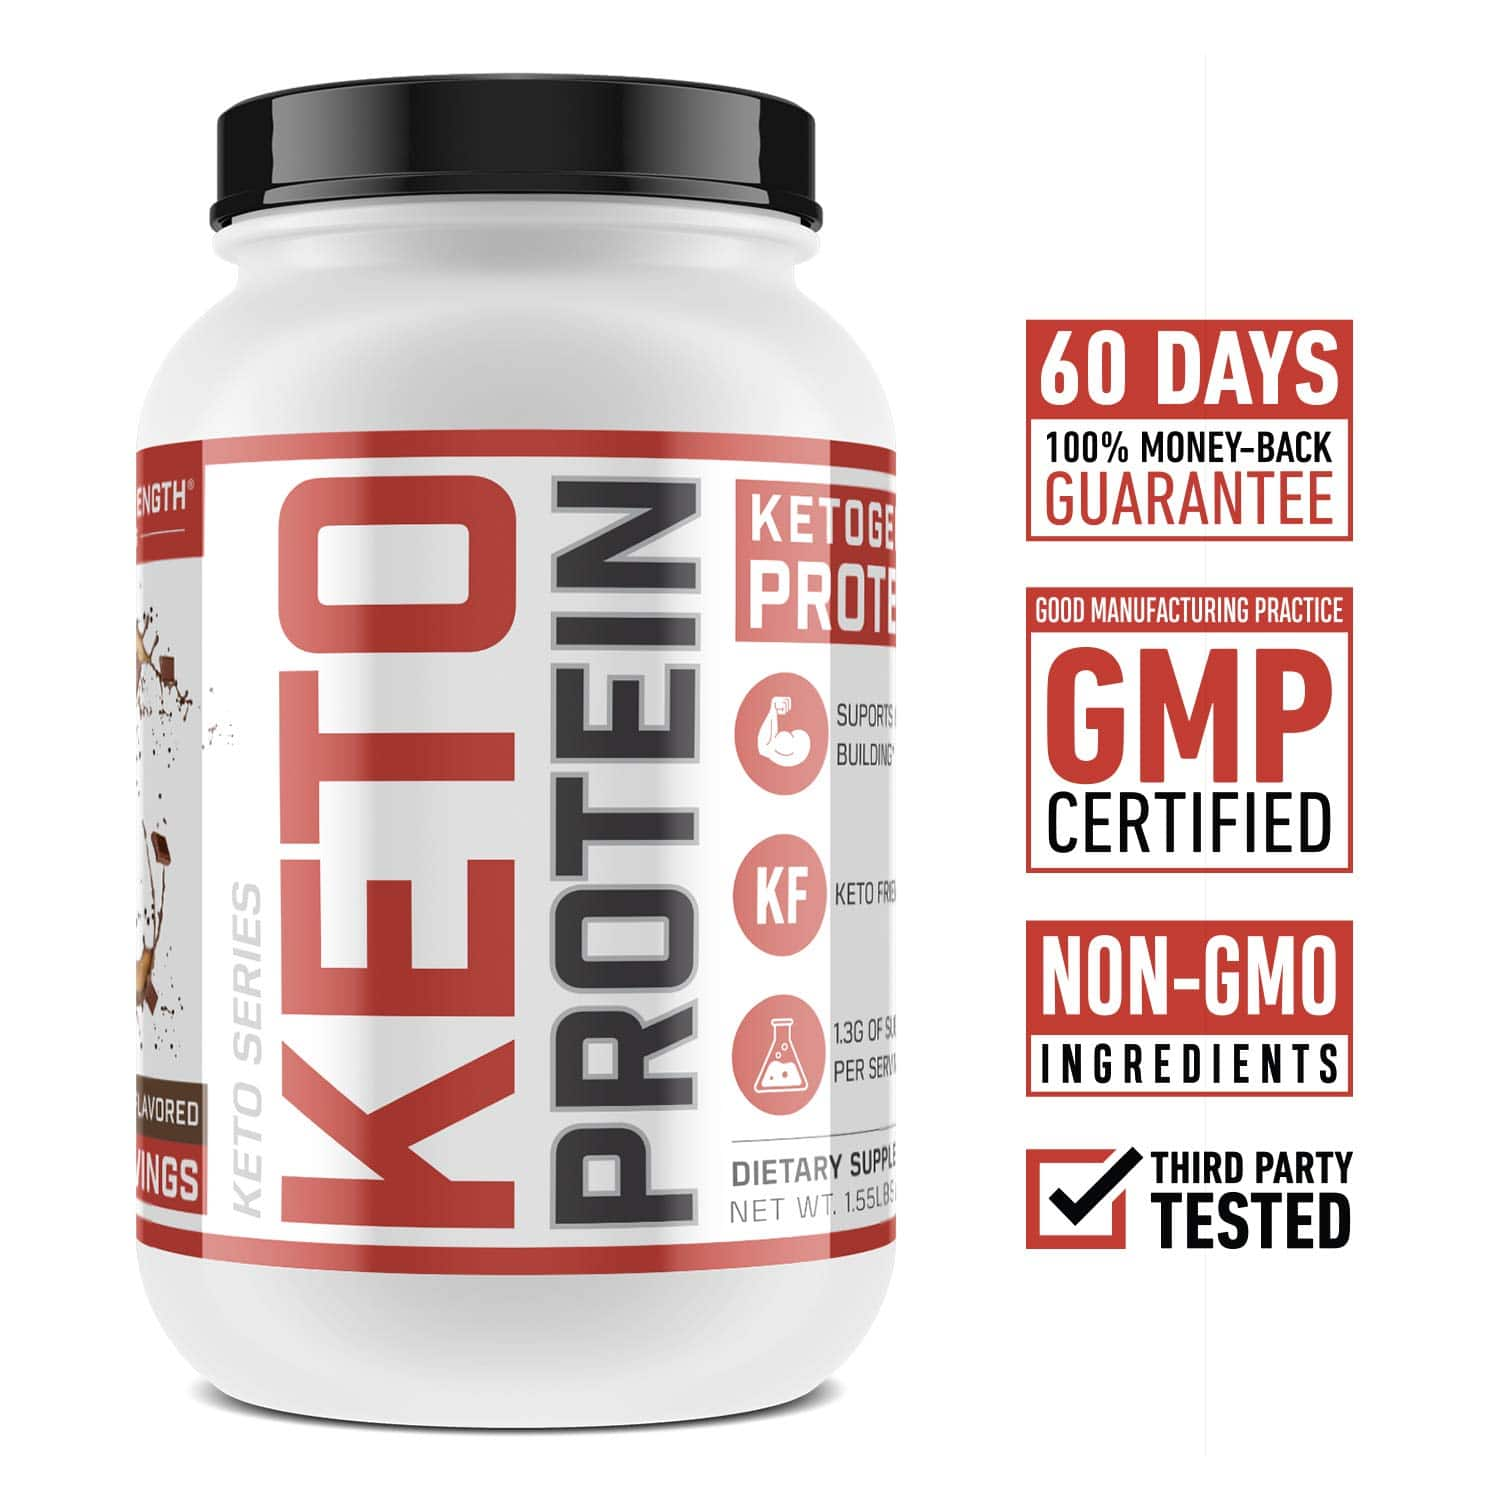 Low-Carb Ketogenic Protein Powder - 33.71 + Free Shipping